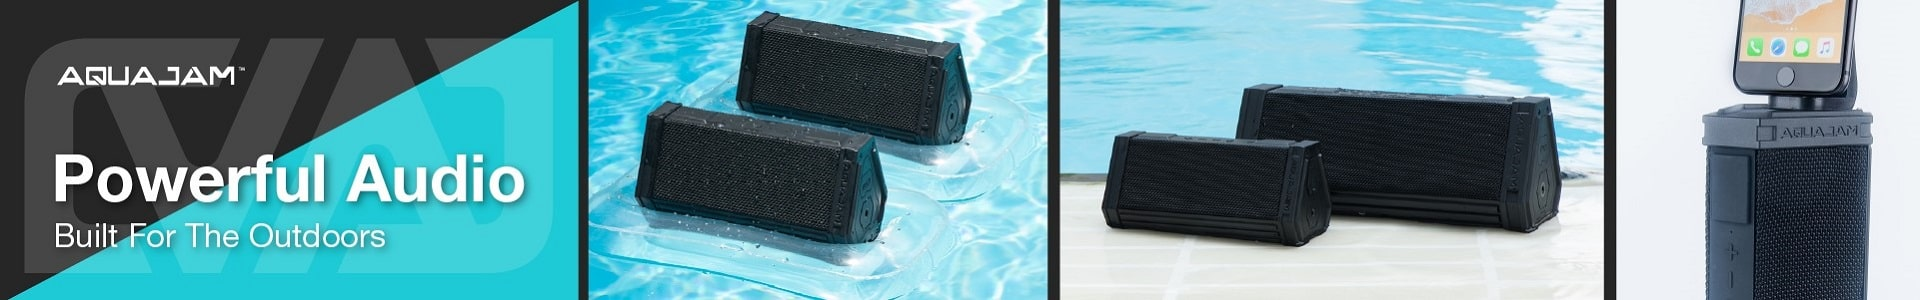 AquaJam Audio Speakers